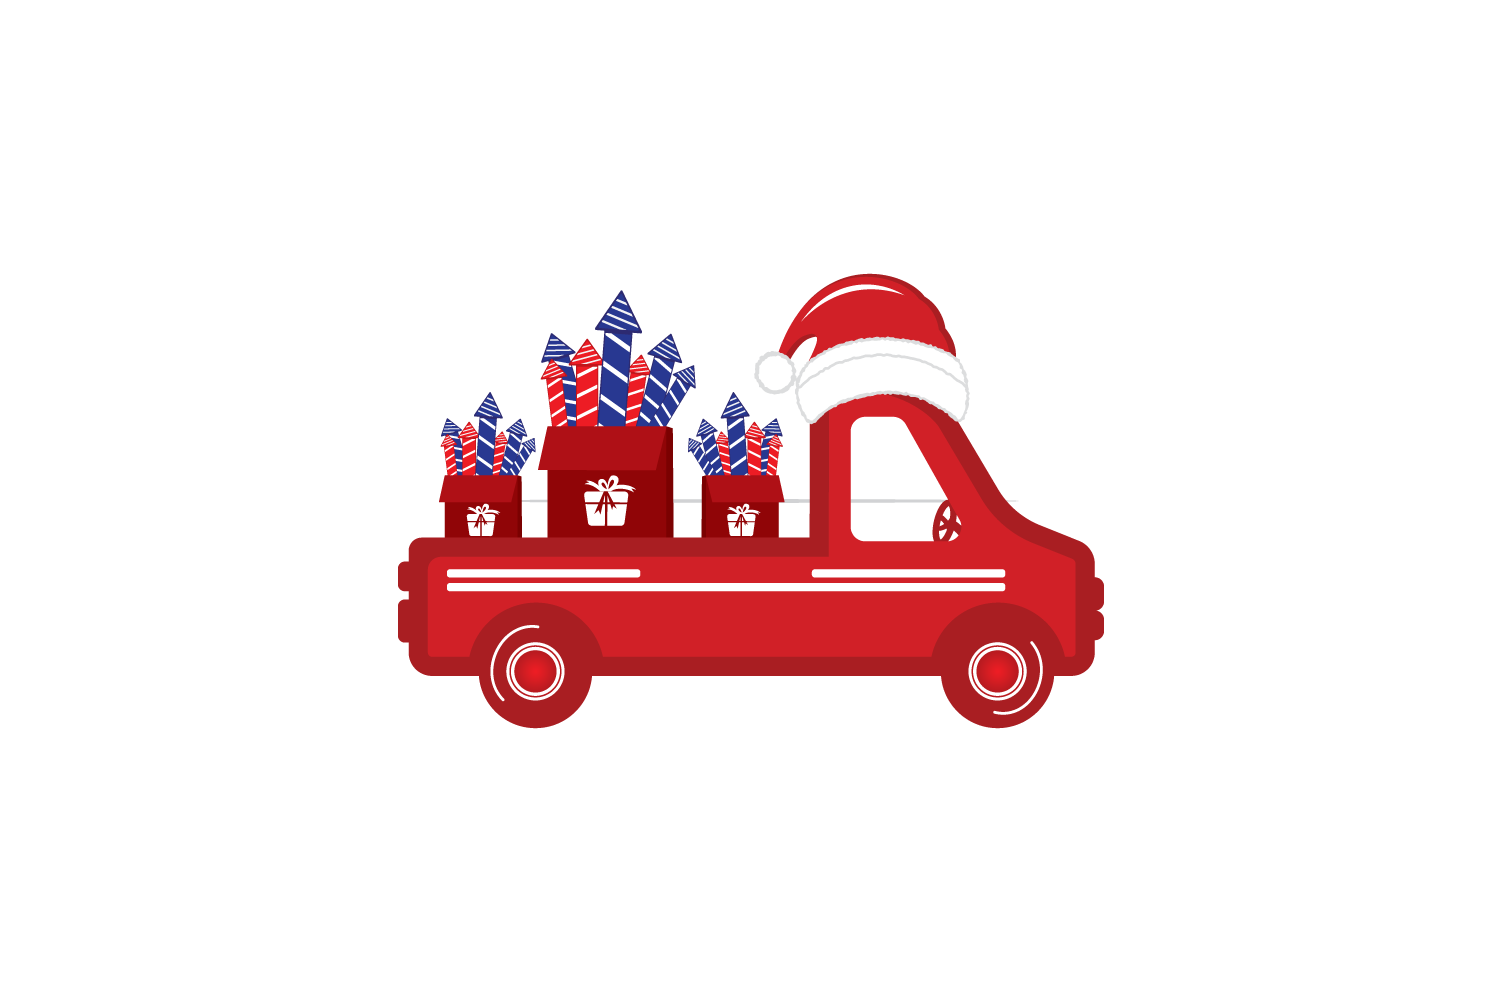 Old vintage red Christmas truck with fireworks and Santa hat example image 3